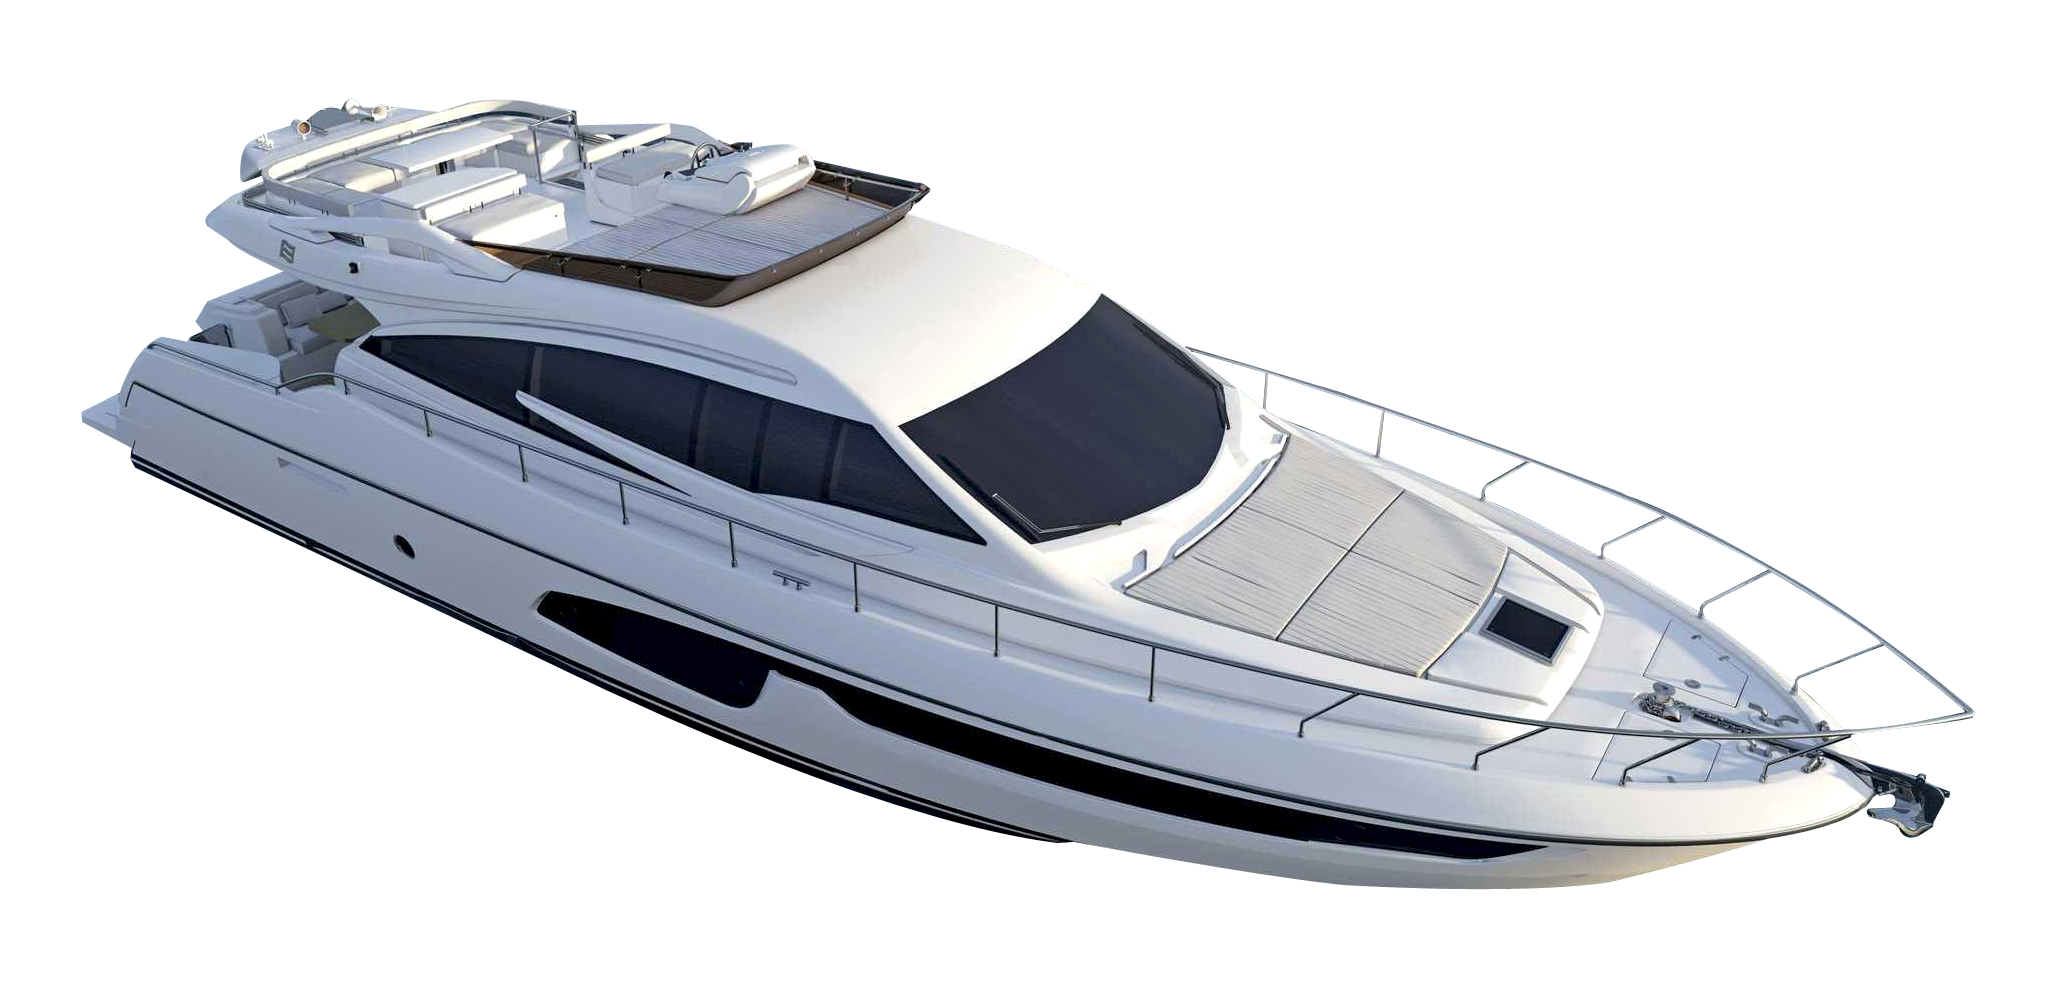 clip freeuse stock Boat png image purepng. Yacht clipart transportation